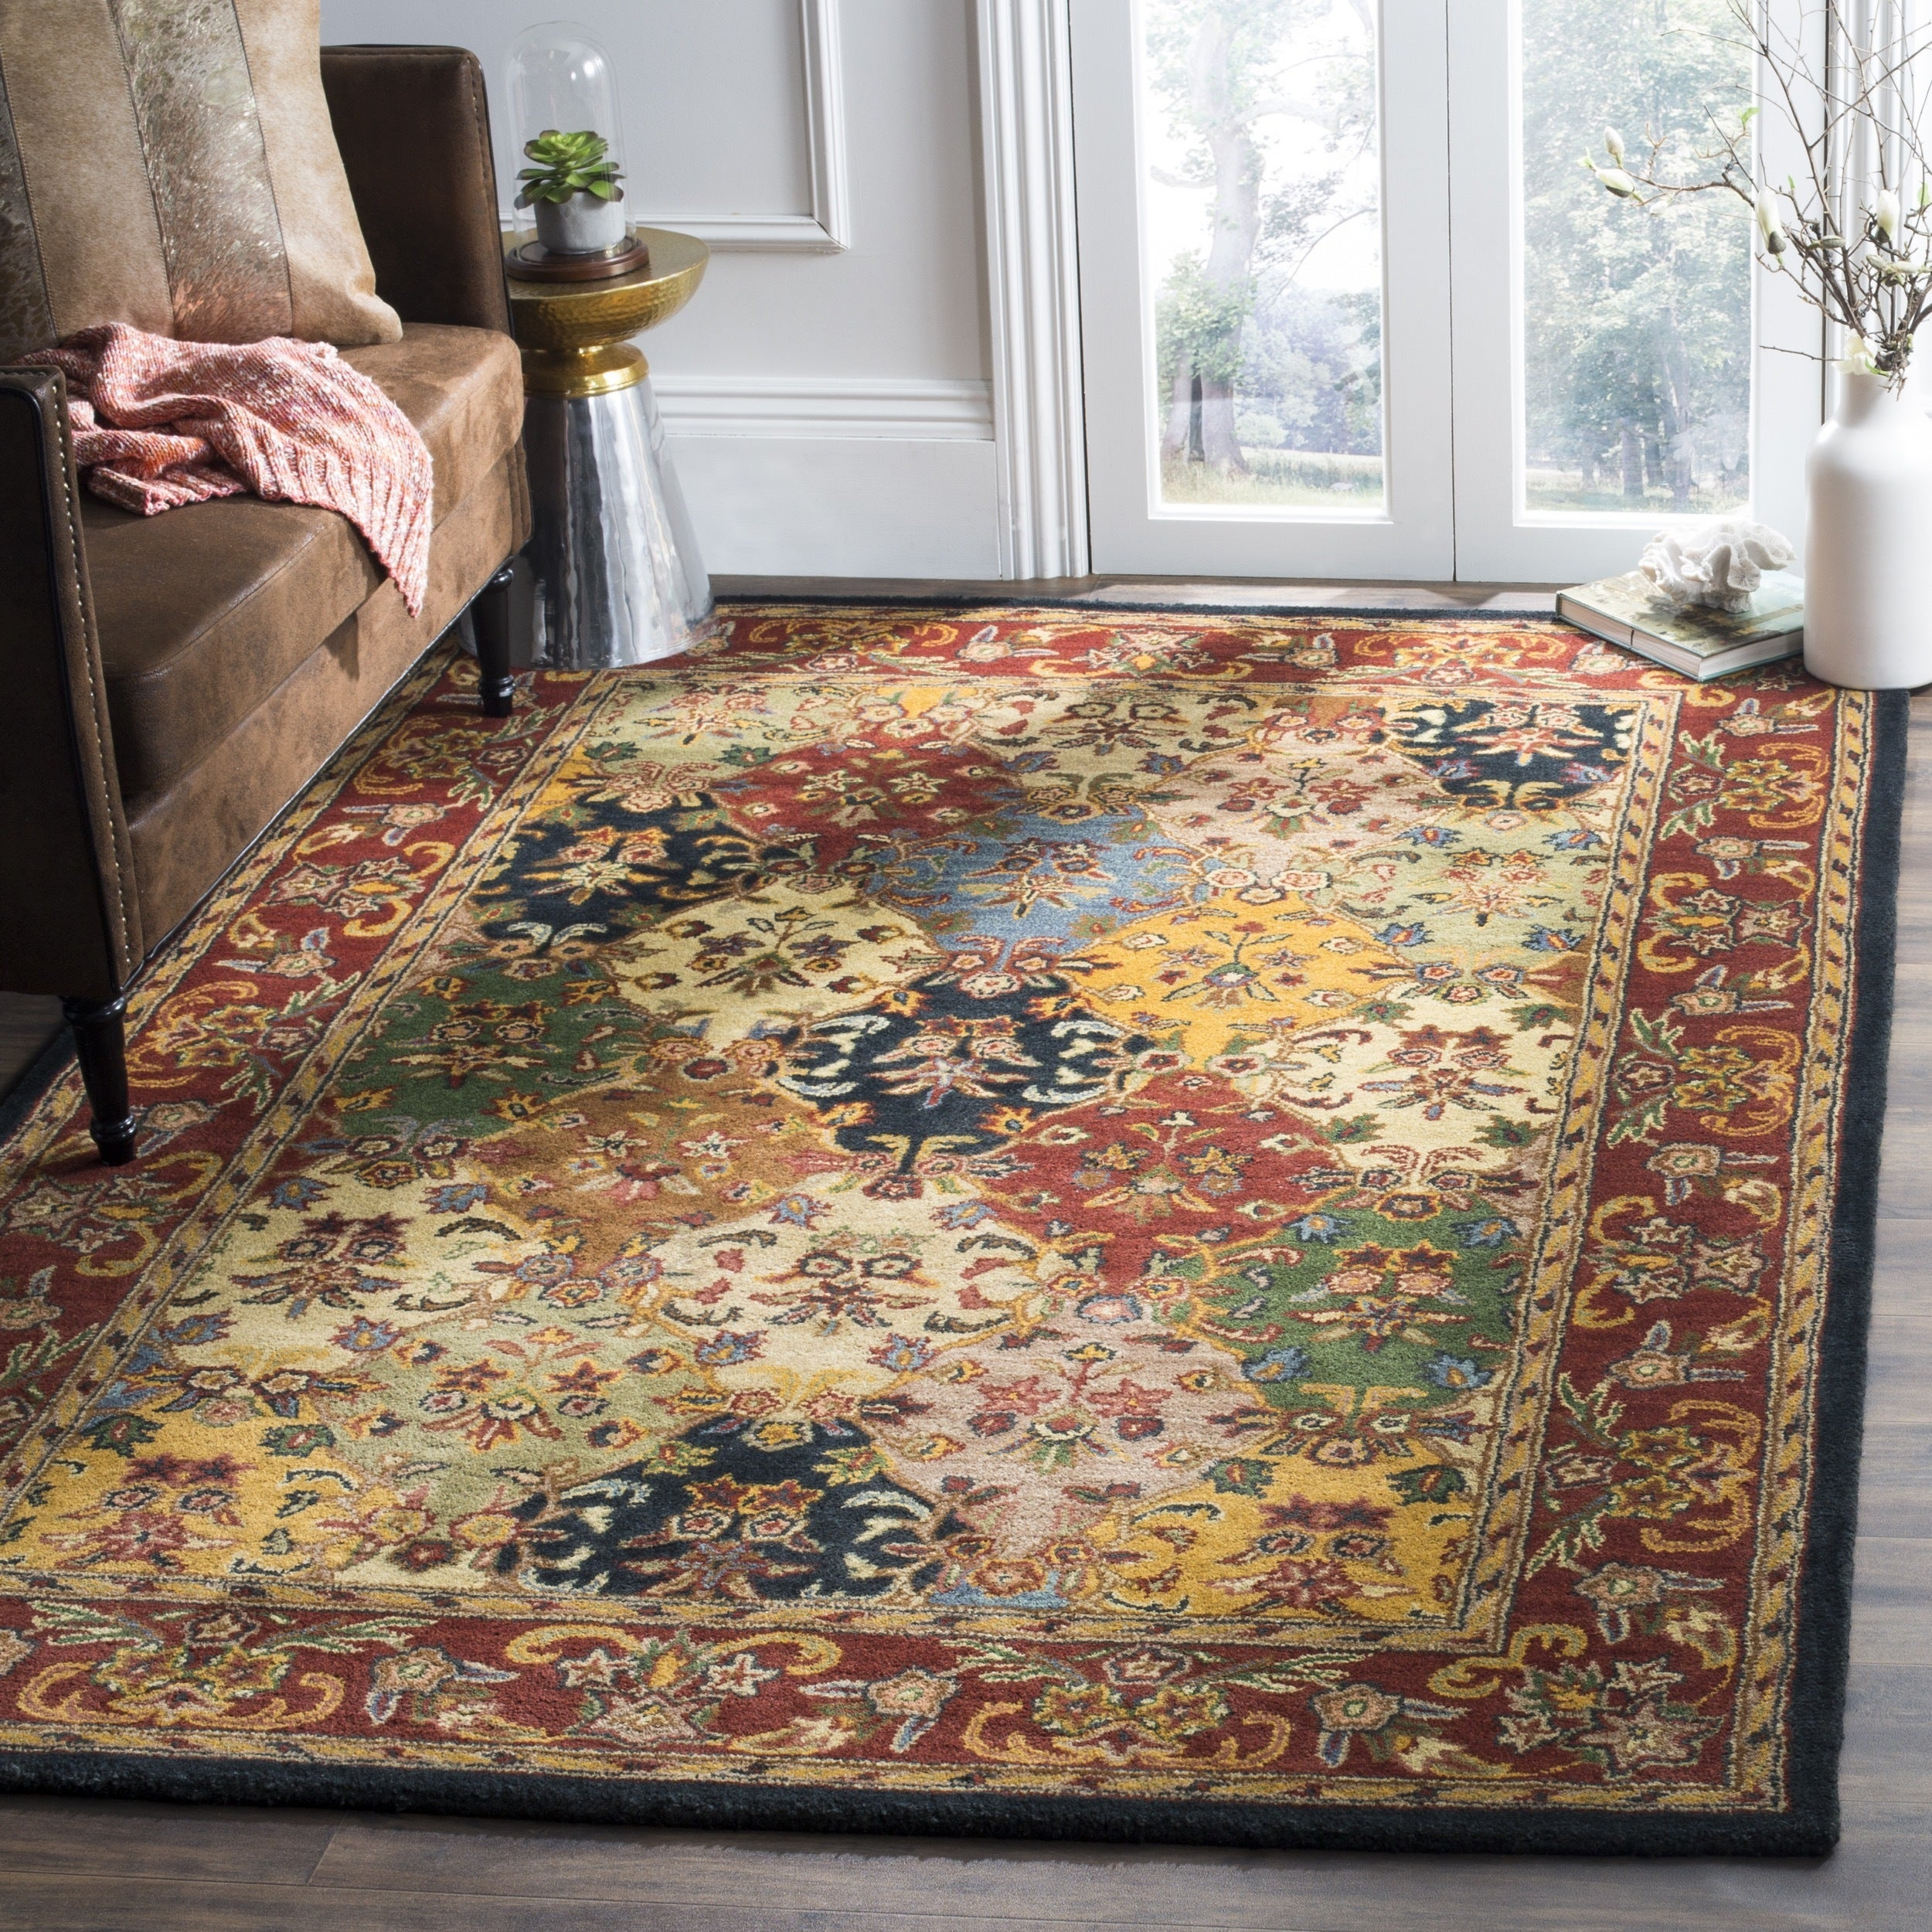 Safavieh Handmade Heritage Timeless Traditional Multicolor/ Burgundy Wool  Rug (7'6 x 9'6) - Free Shipping Today - Overstock.com - 12585038